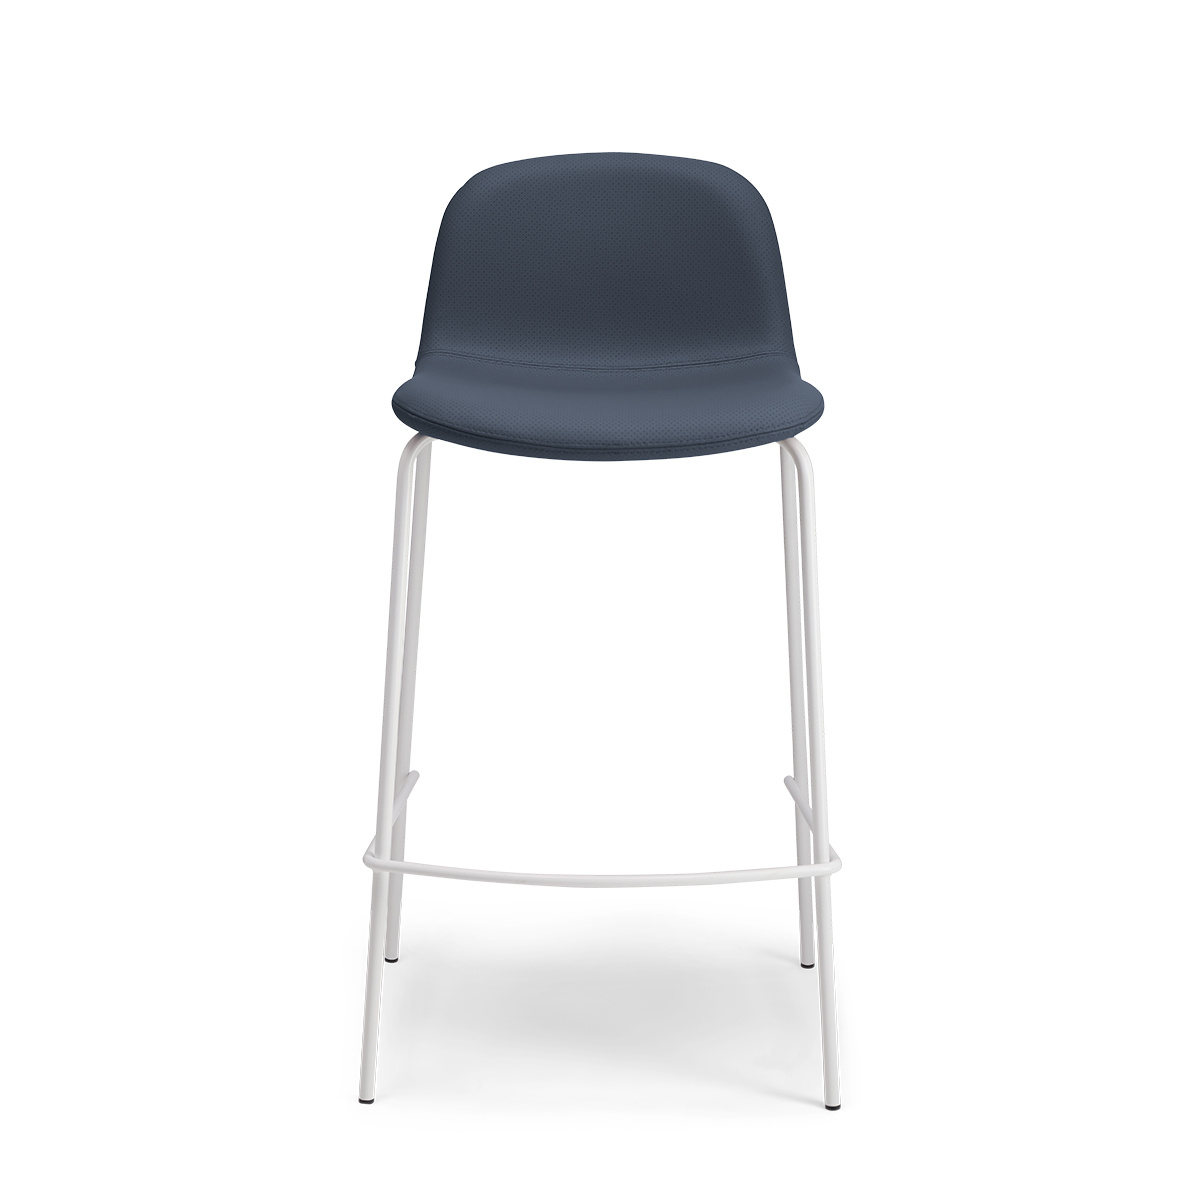 Monza barstool in blue perforated leather with a white frame